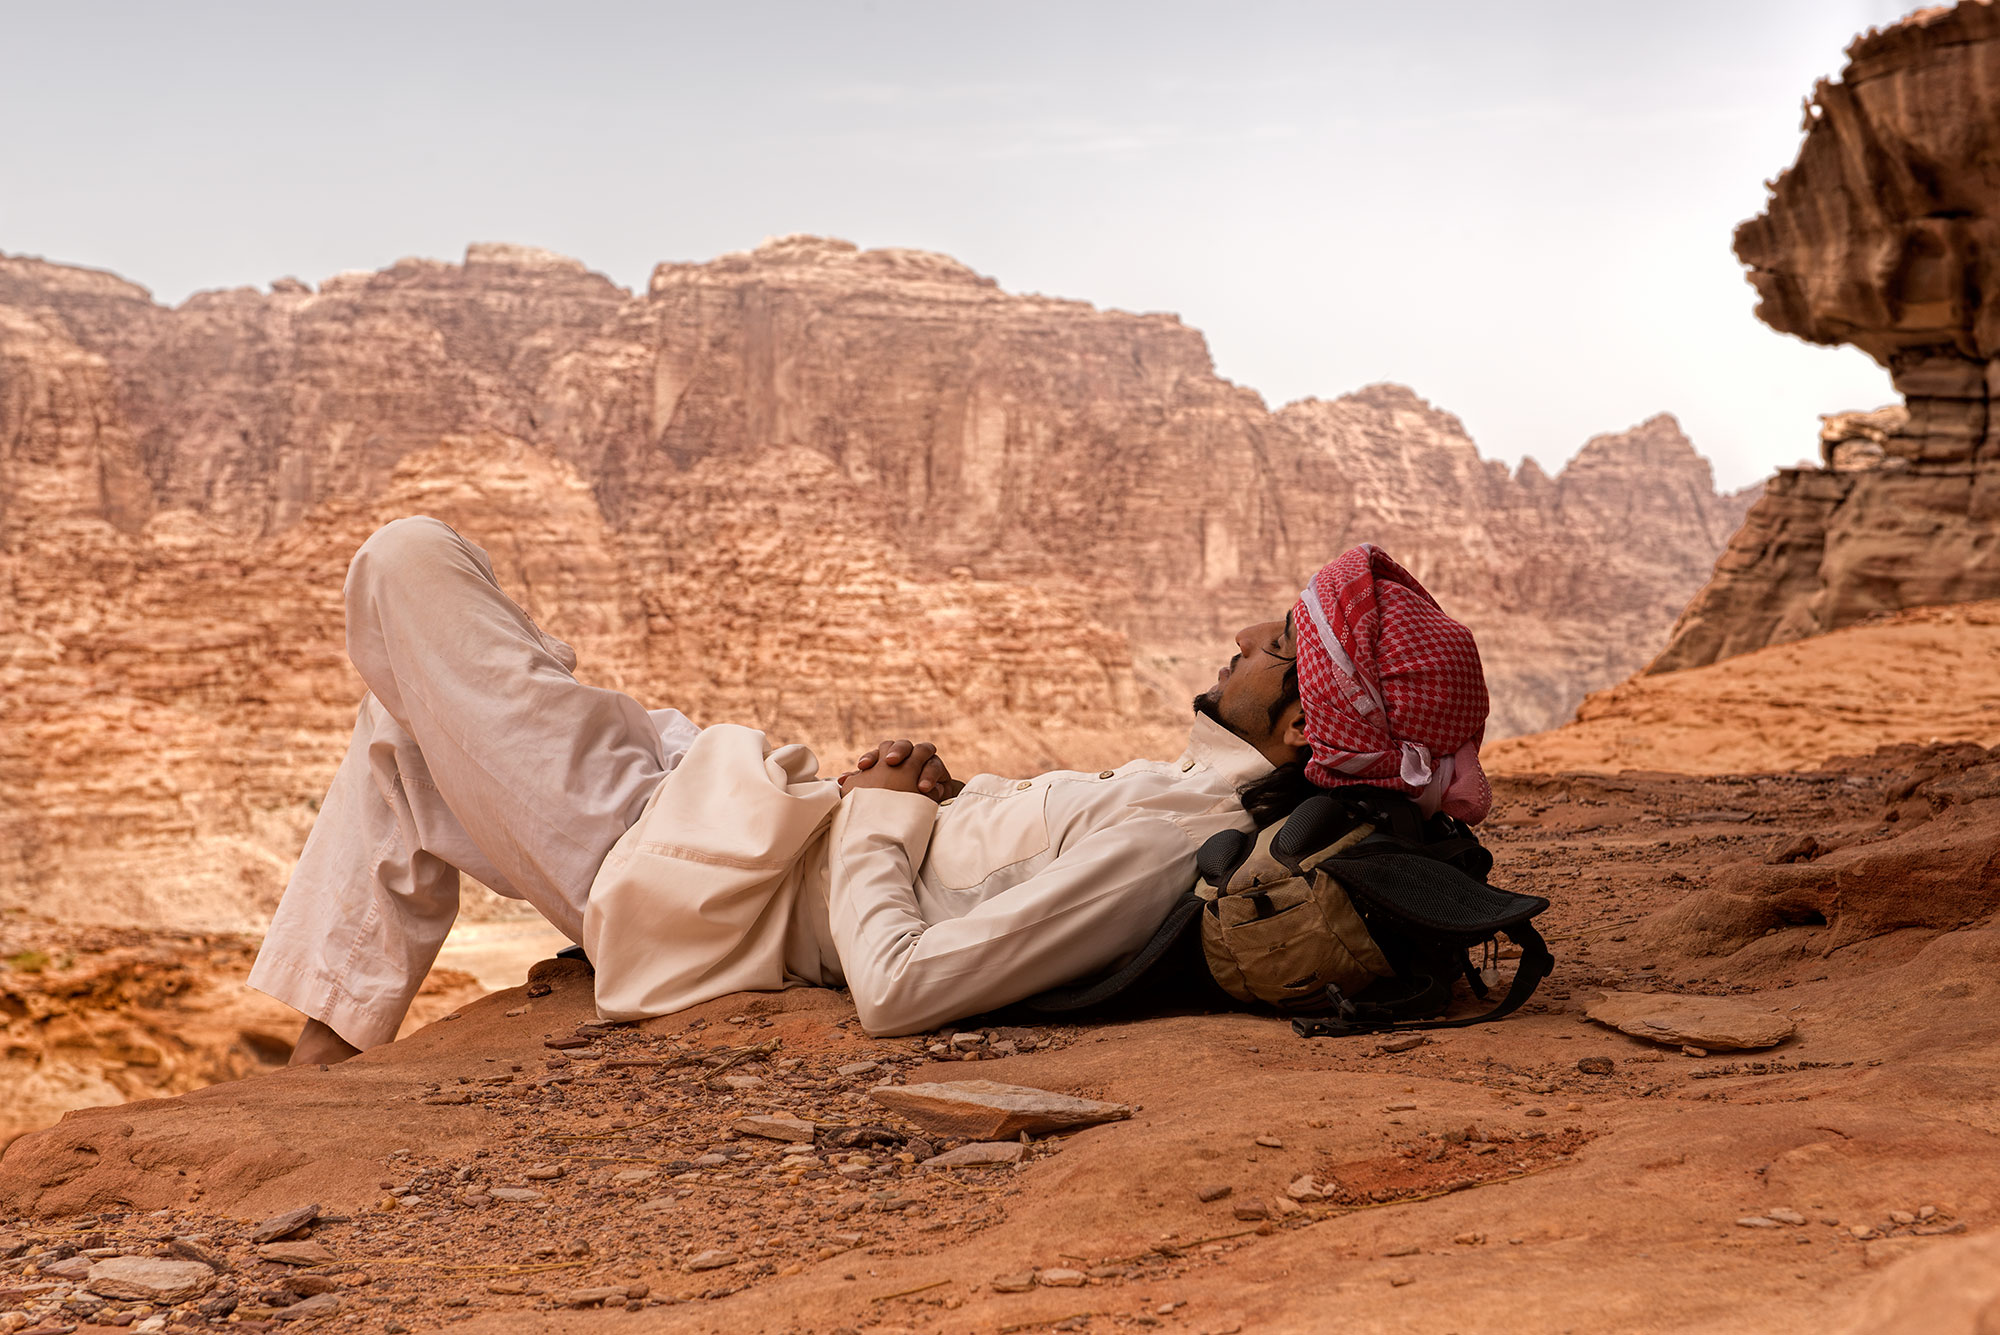 Wadi Rum, a relaxing place in the Kingdom of Jordan